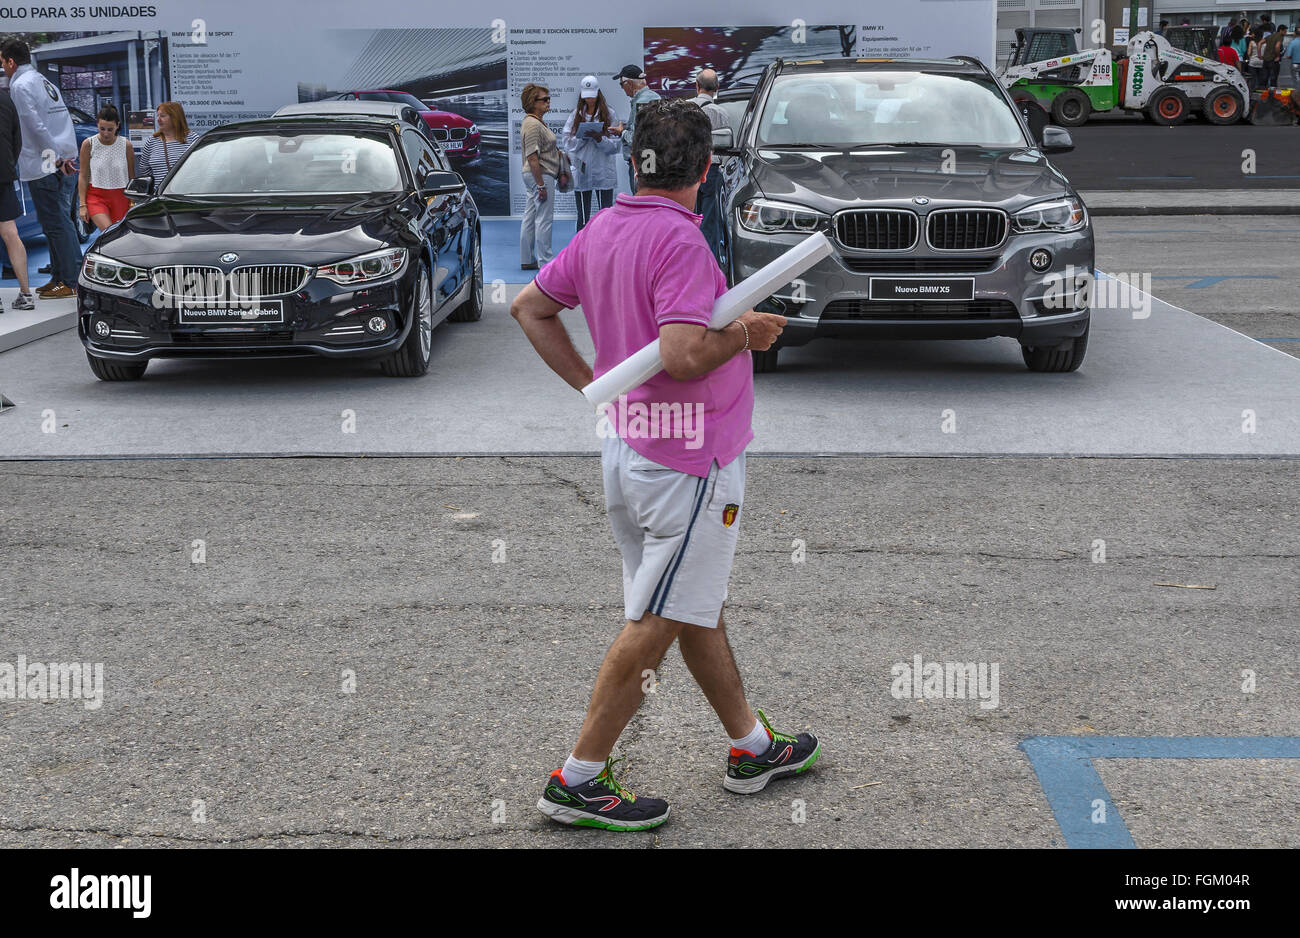 View of a man with a pink shirt in a car exhibition, Madrid city, Spain Stock Photo